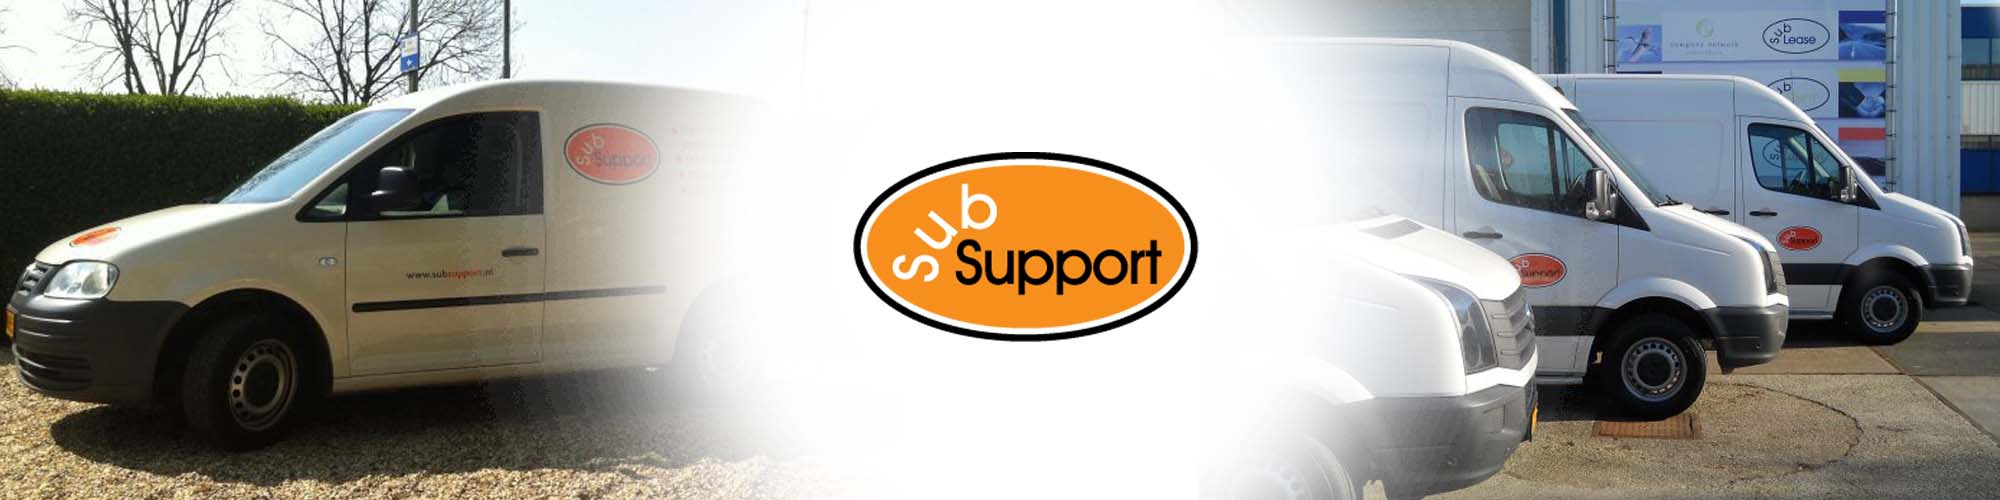 subsupport